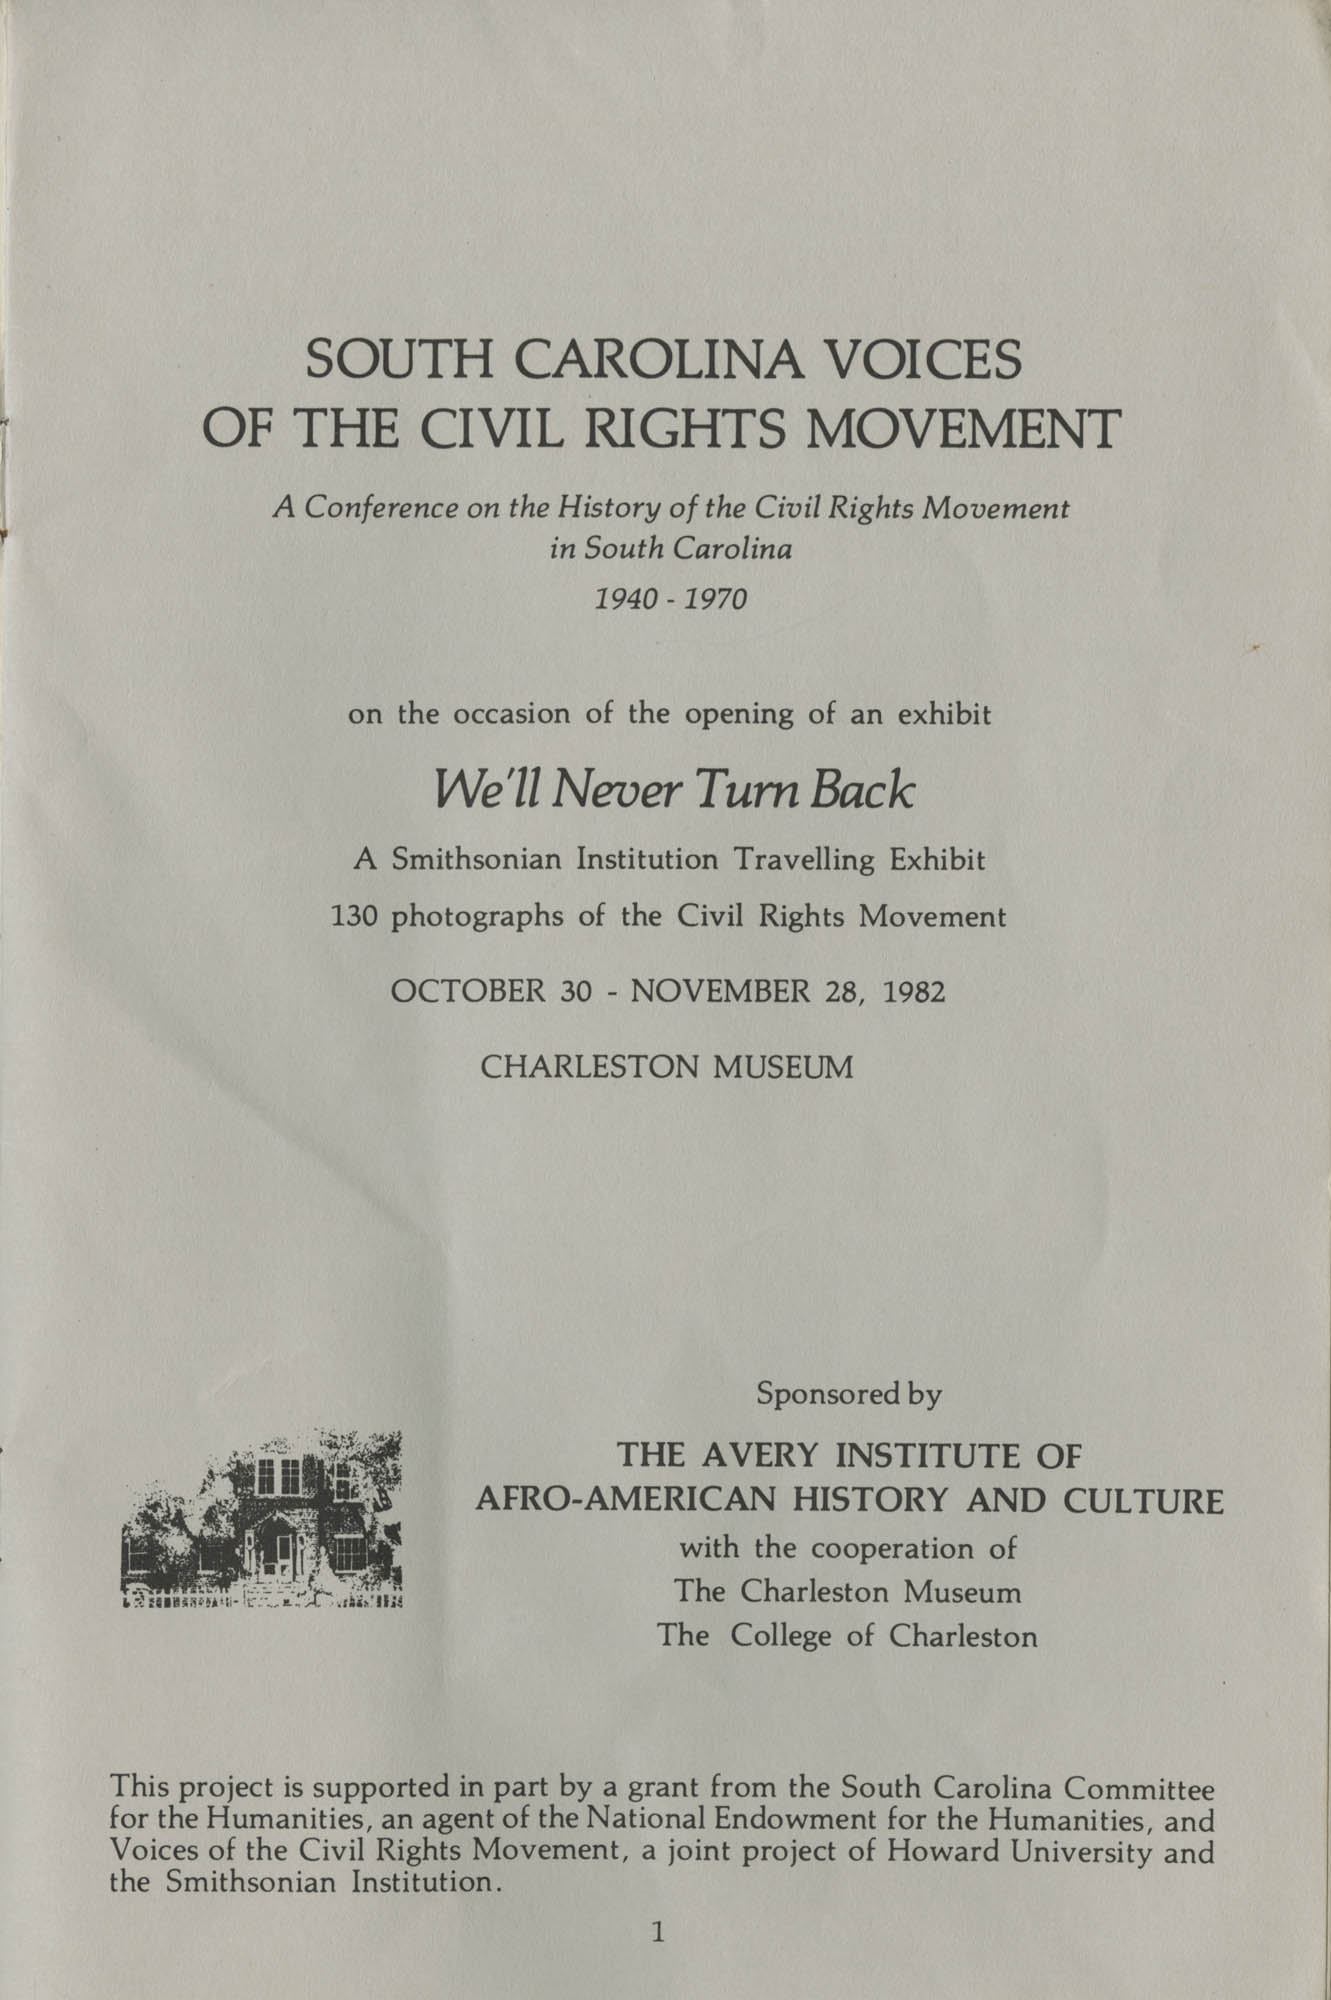 South Carolina Voices of the Civil Rights Movement, Page 1